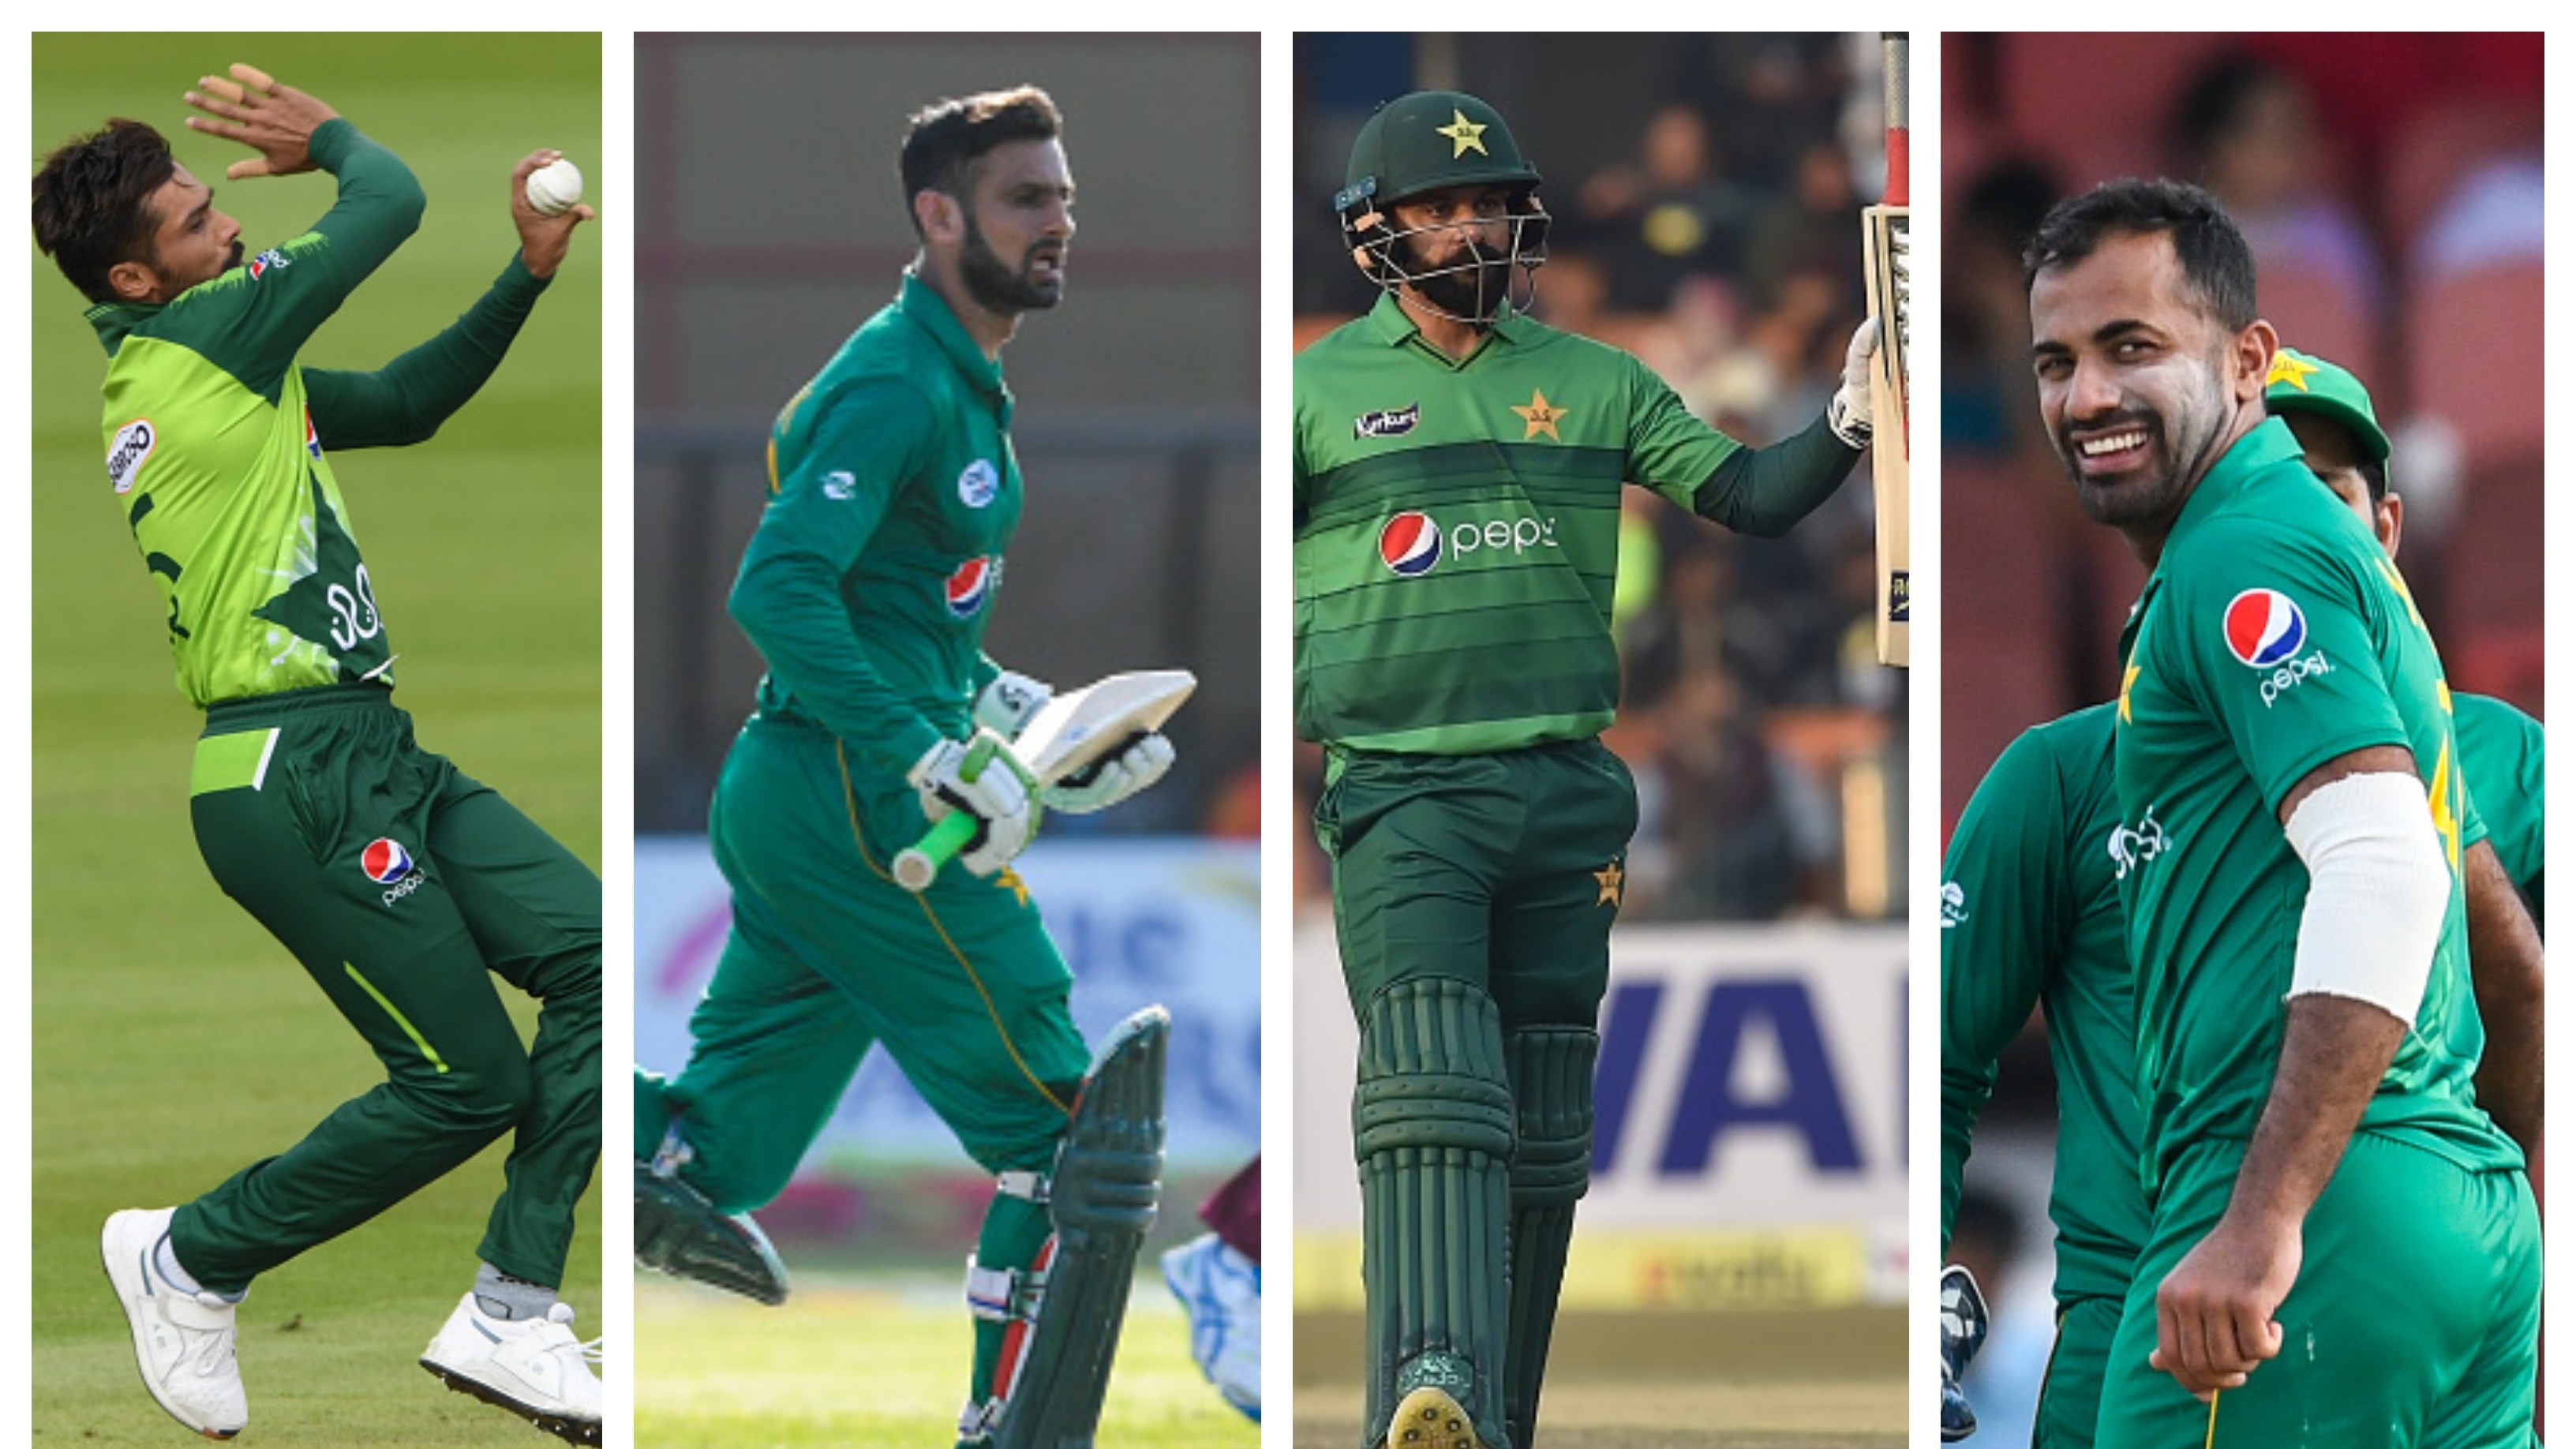 Malik, Hafeez, Amir and Wahab to get 'A' category match fees after losing out on Pakistan contract: Report